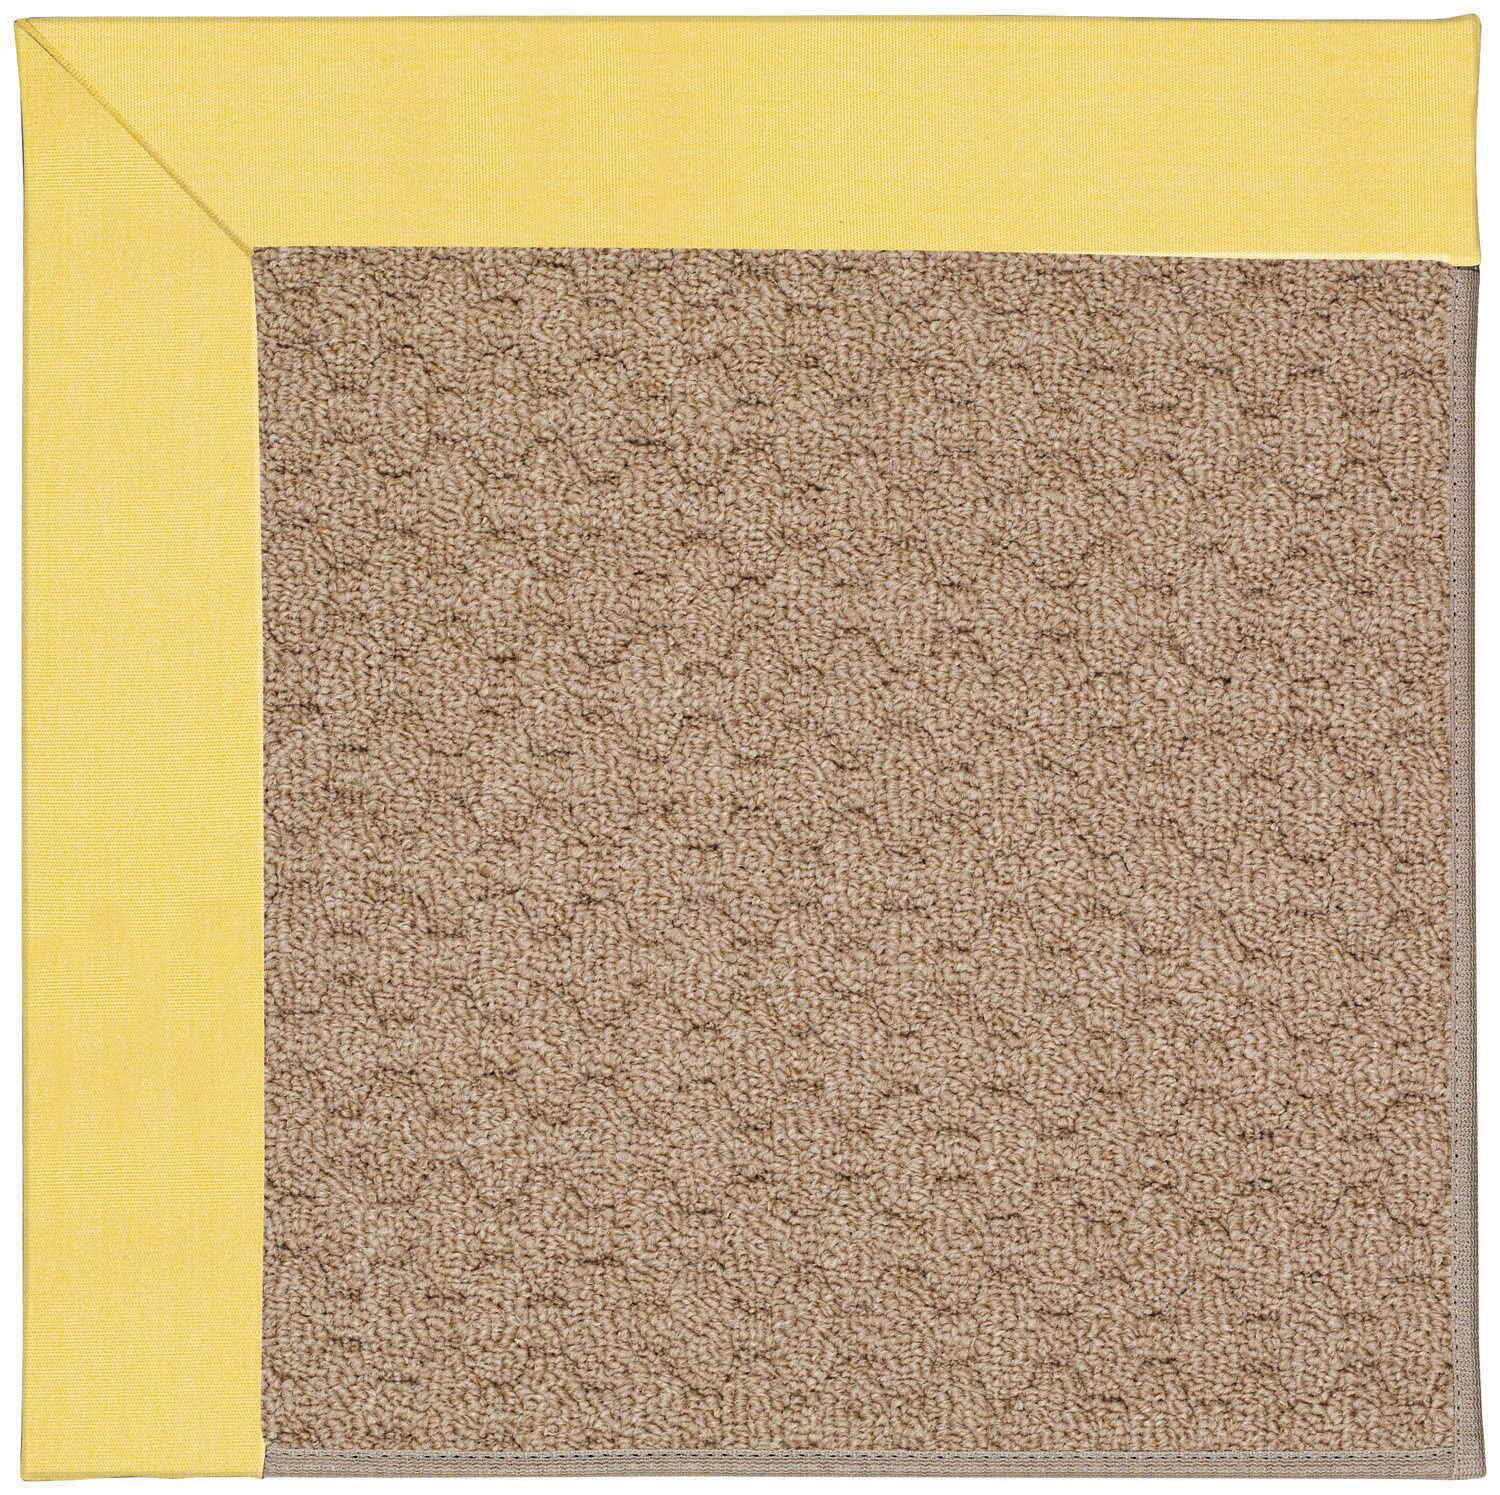 Lisle Machine Tufted Yellow/Brown Indoor/Outdoor Area Rug Rug Size: Rectangle 9' x 12'